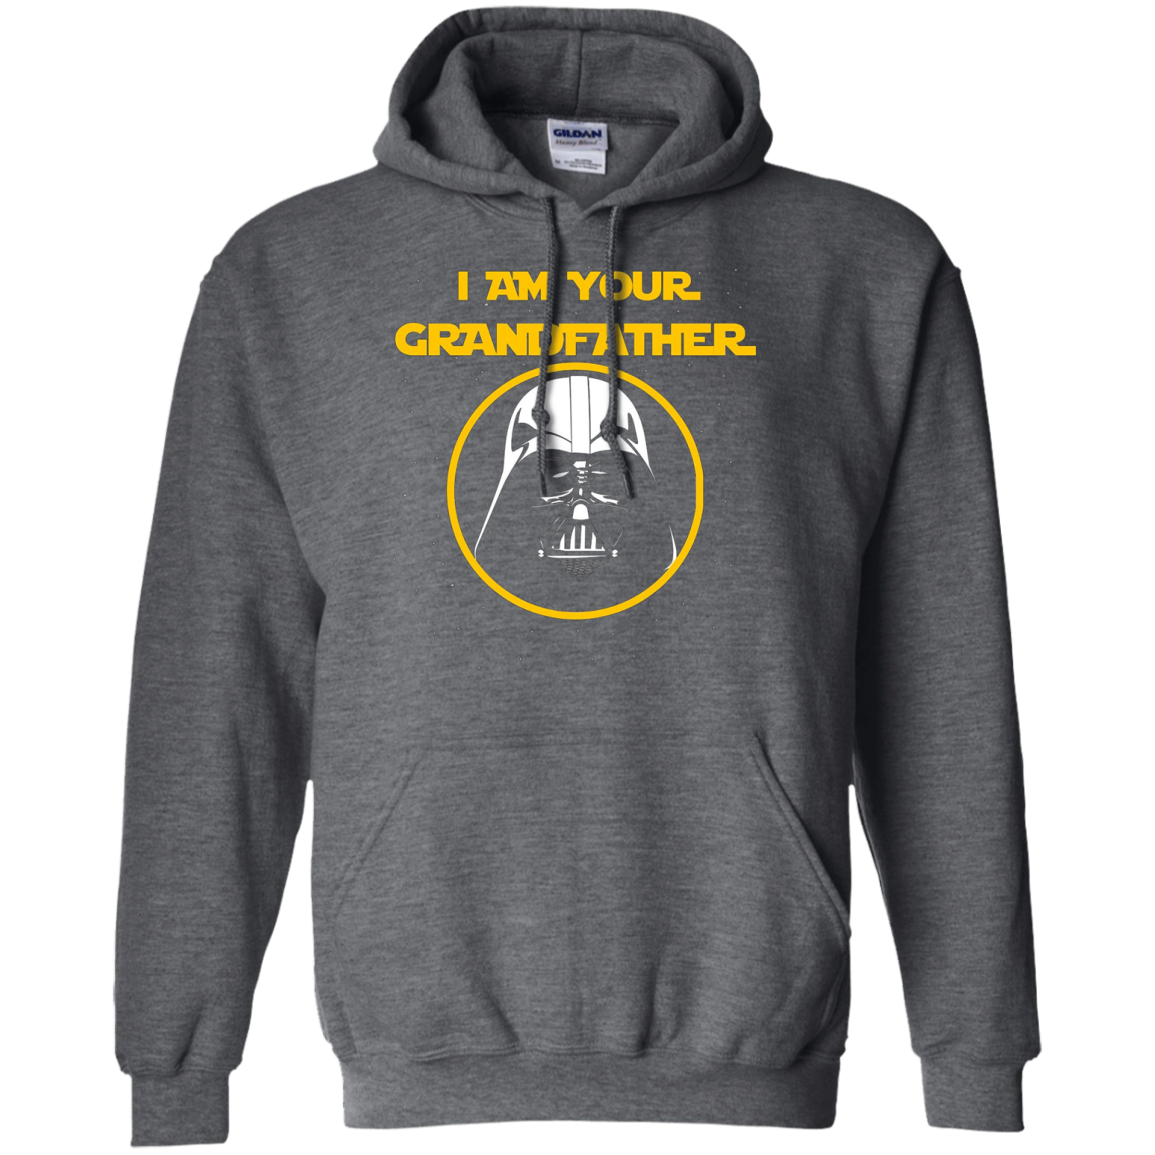 I Am Your Grandfather - Movie, Quote, Grandad - T Shirt